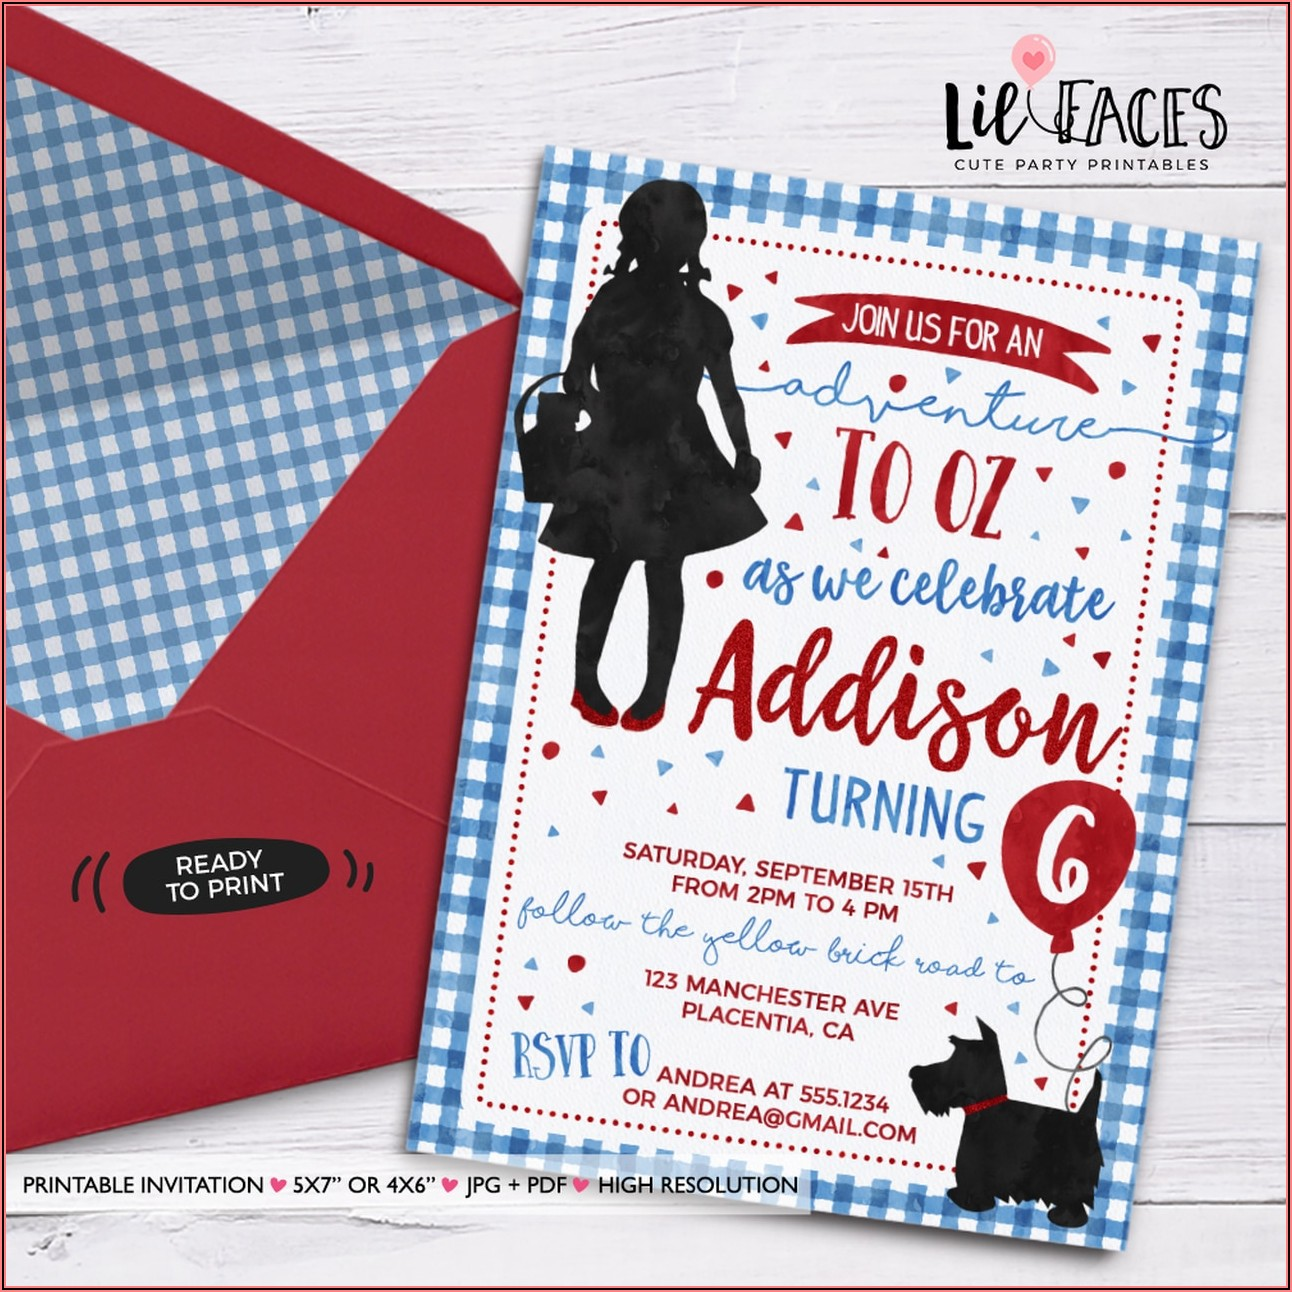 Print Birthday Invitations Cvs